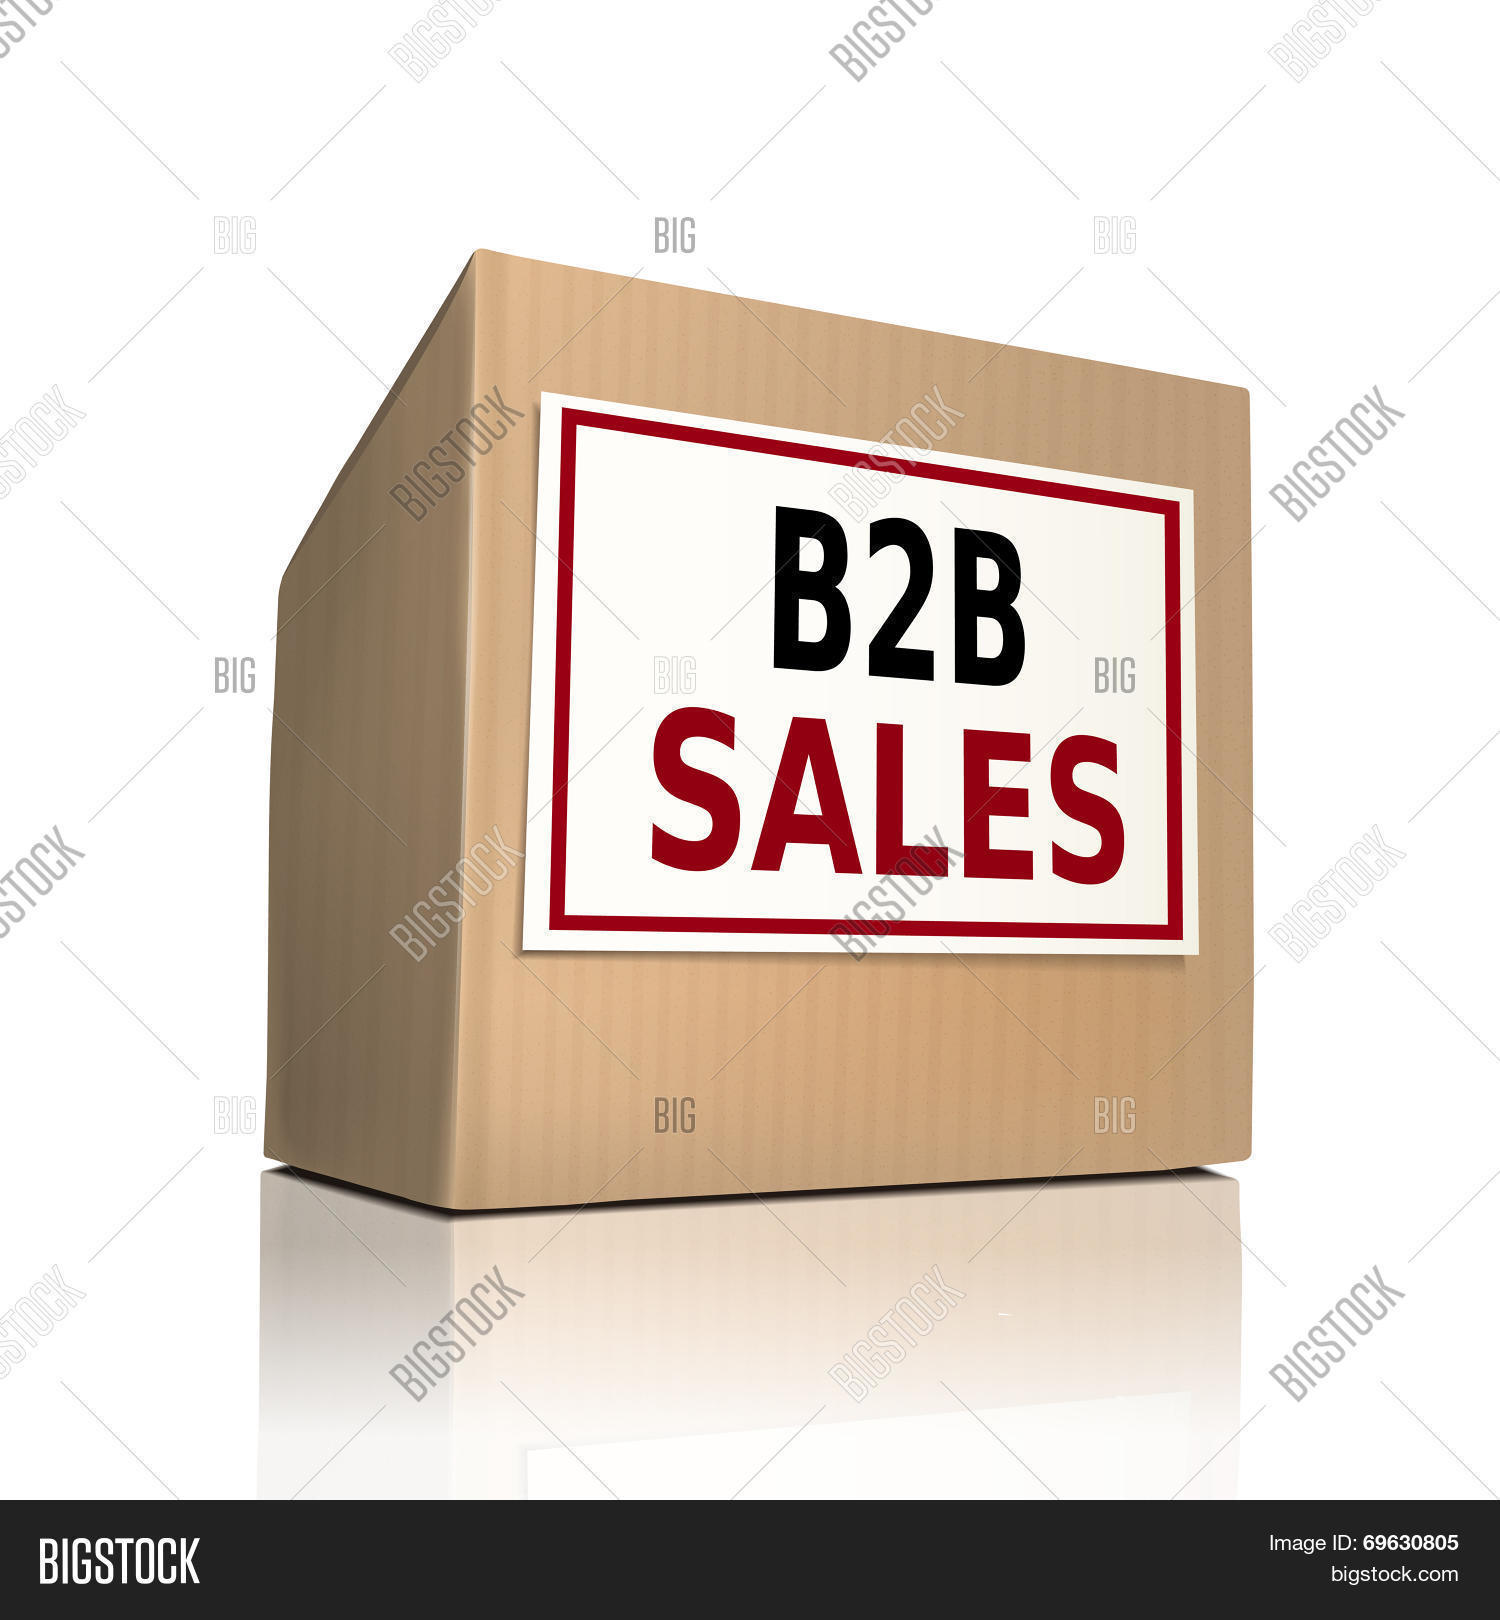 B To B Sales On A Paper Box Stock Vector & Stock Photos | Bigstock